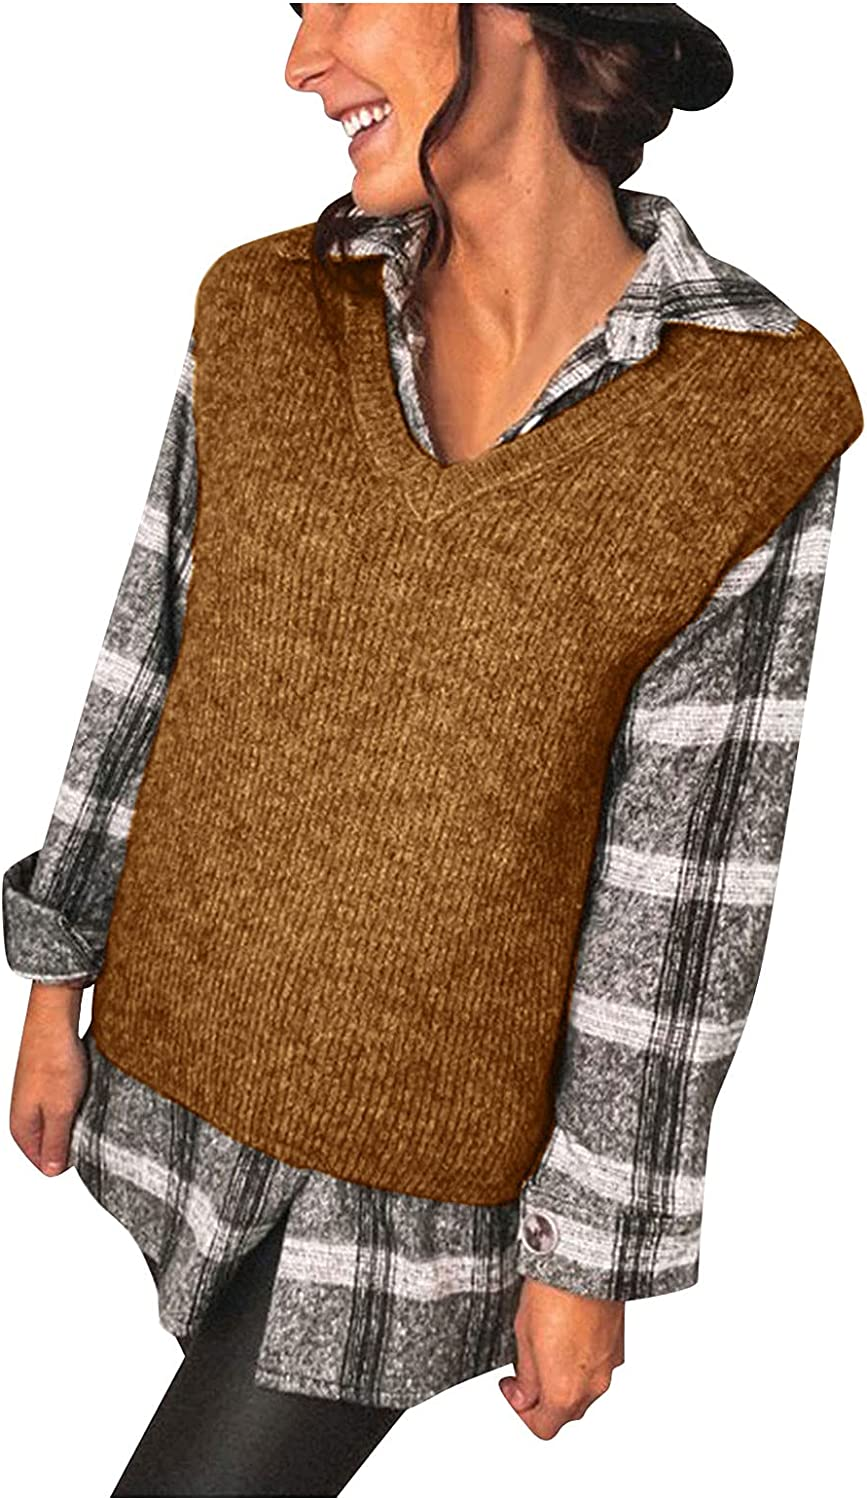 Women's V-Neck Knitted Sweater Vest Cool Weather London-Style Loose Jumper Pullovers Top